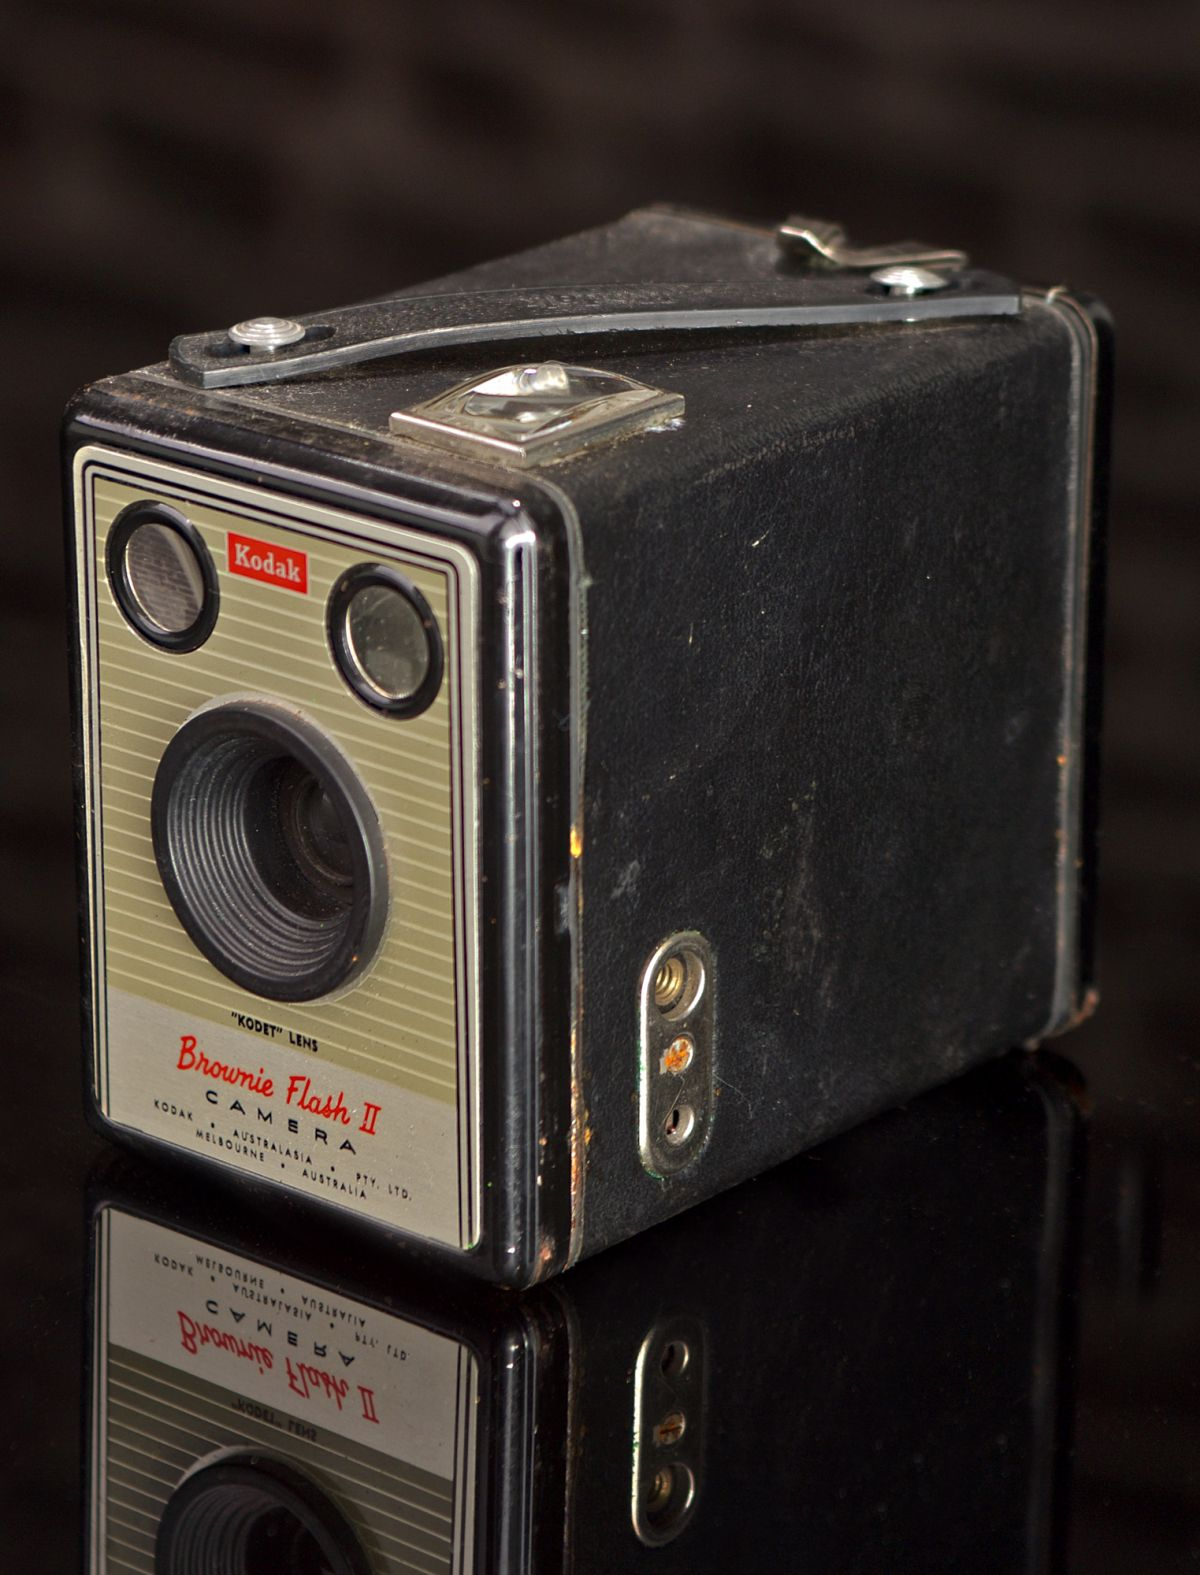 KODAK BROWNIE FLASH II AUSTRALIAN MODEL